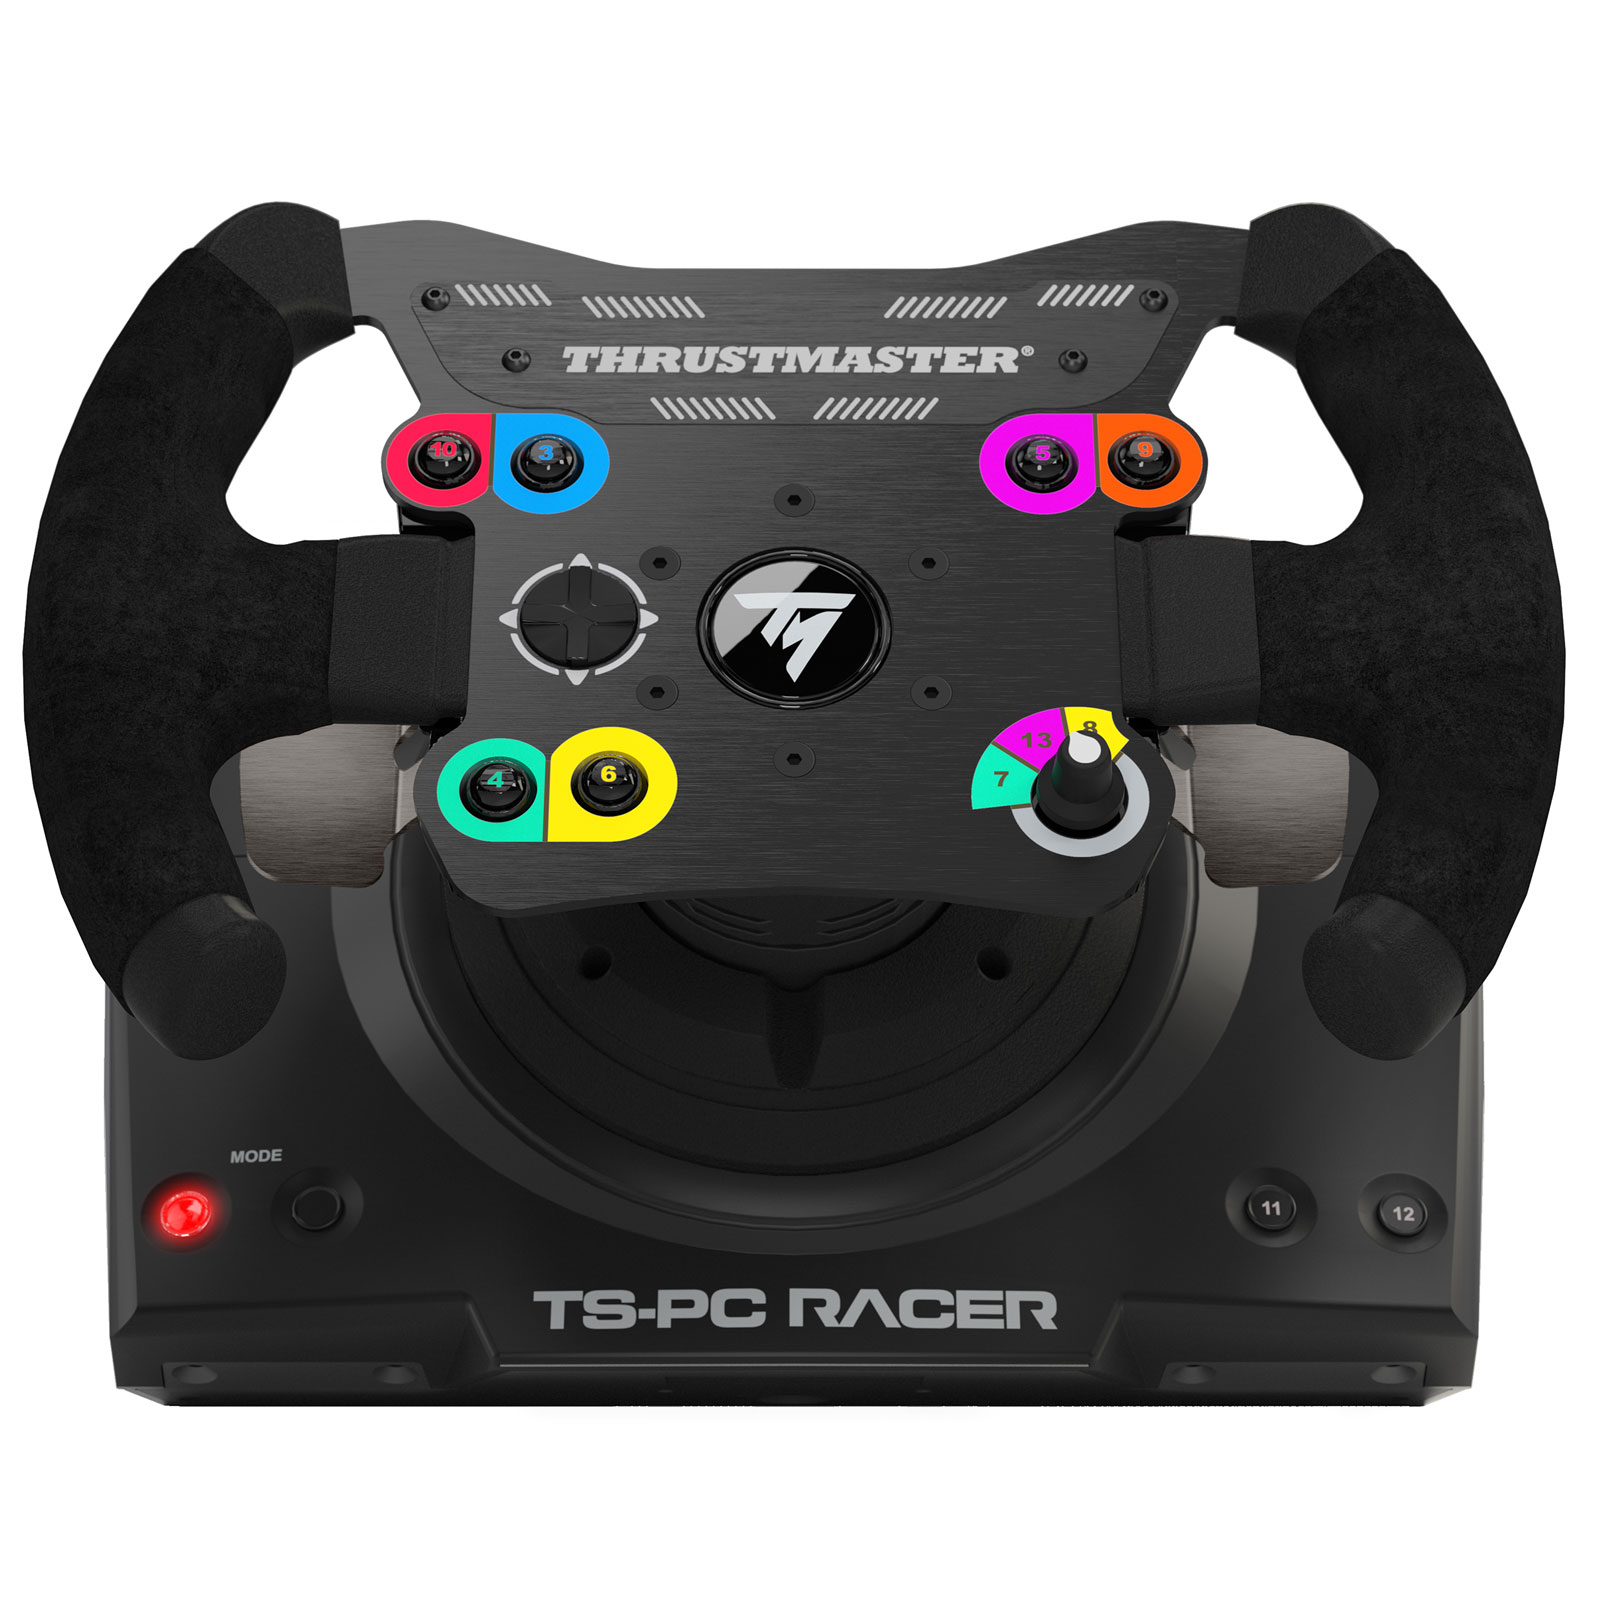 Thrustmaster F1 force feedback Racing Wheel driver windows 7 file free download fast